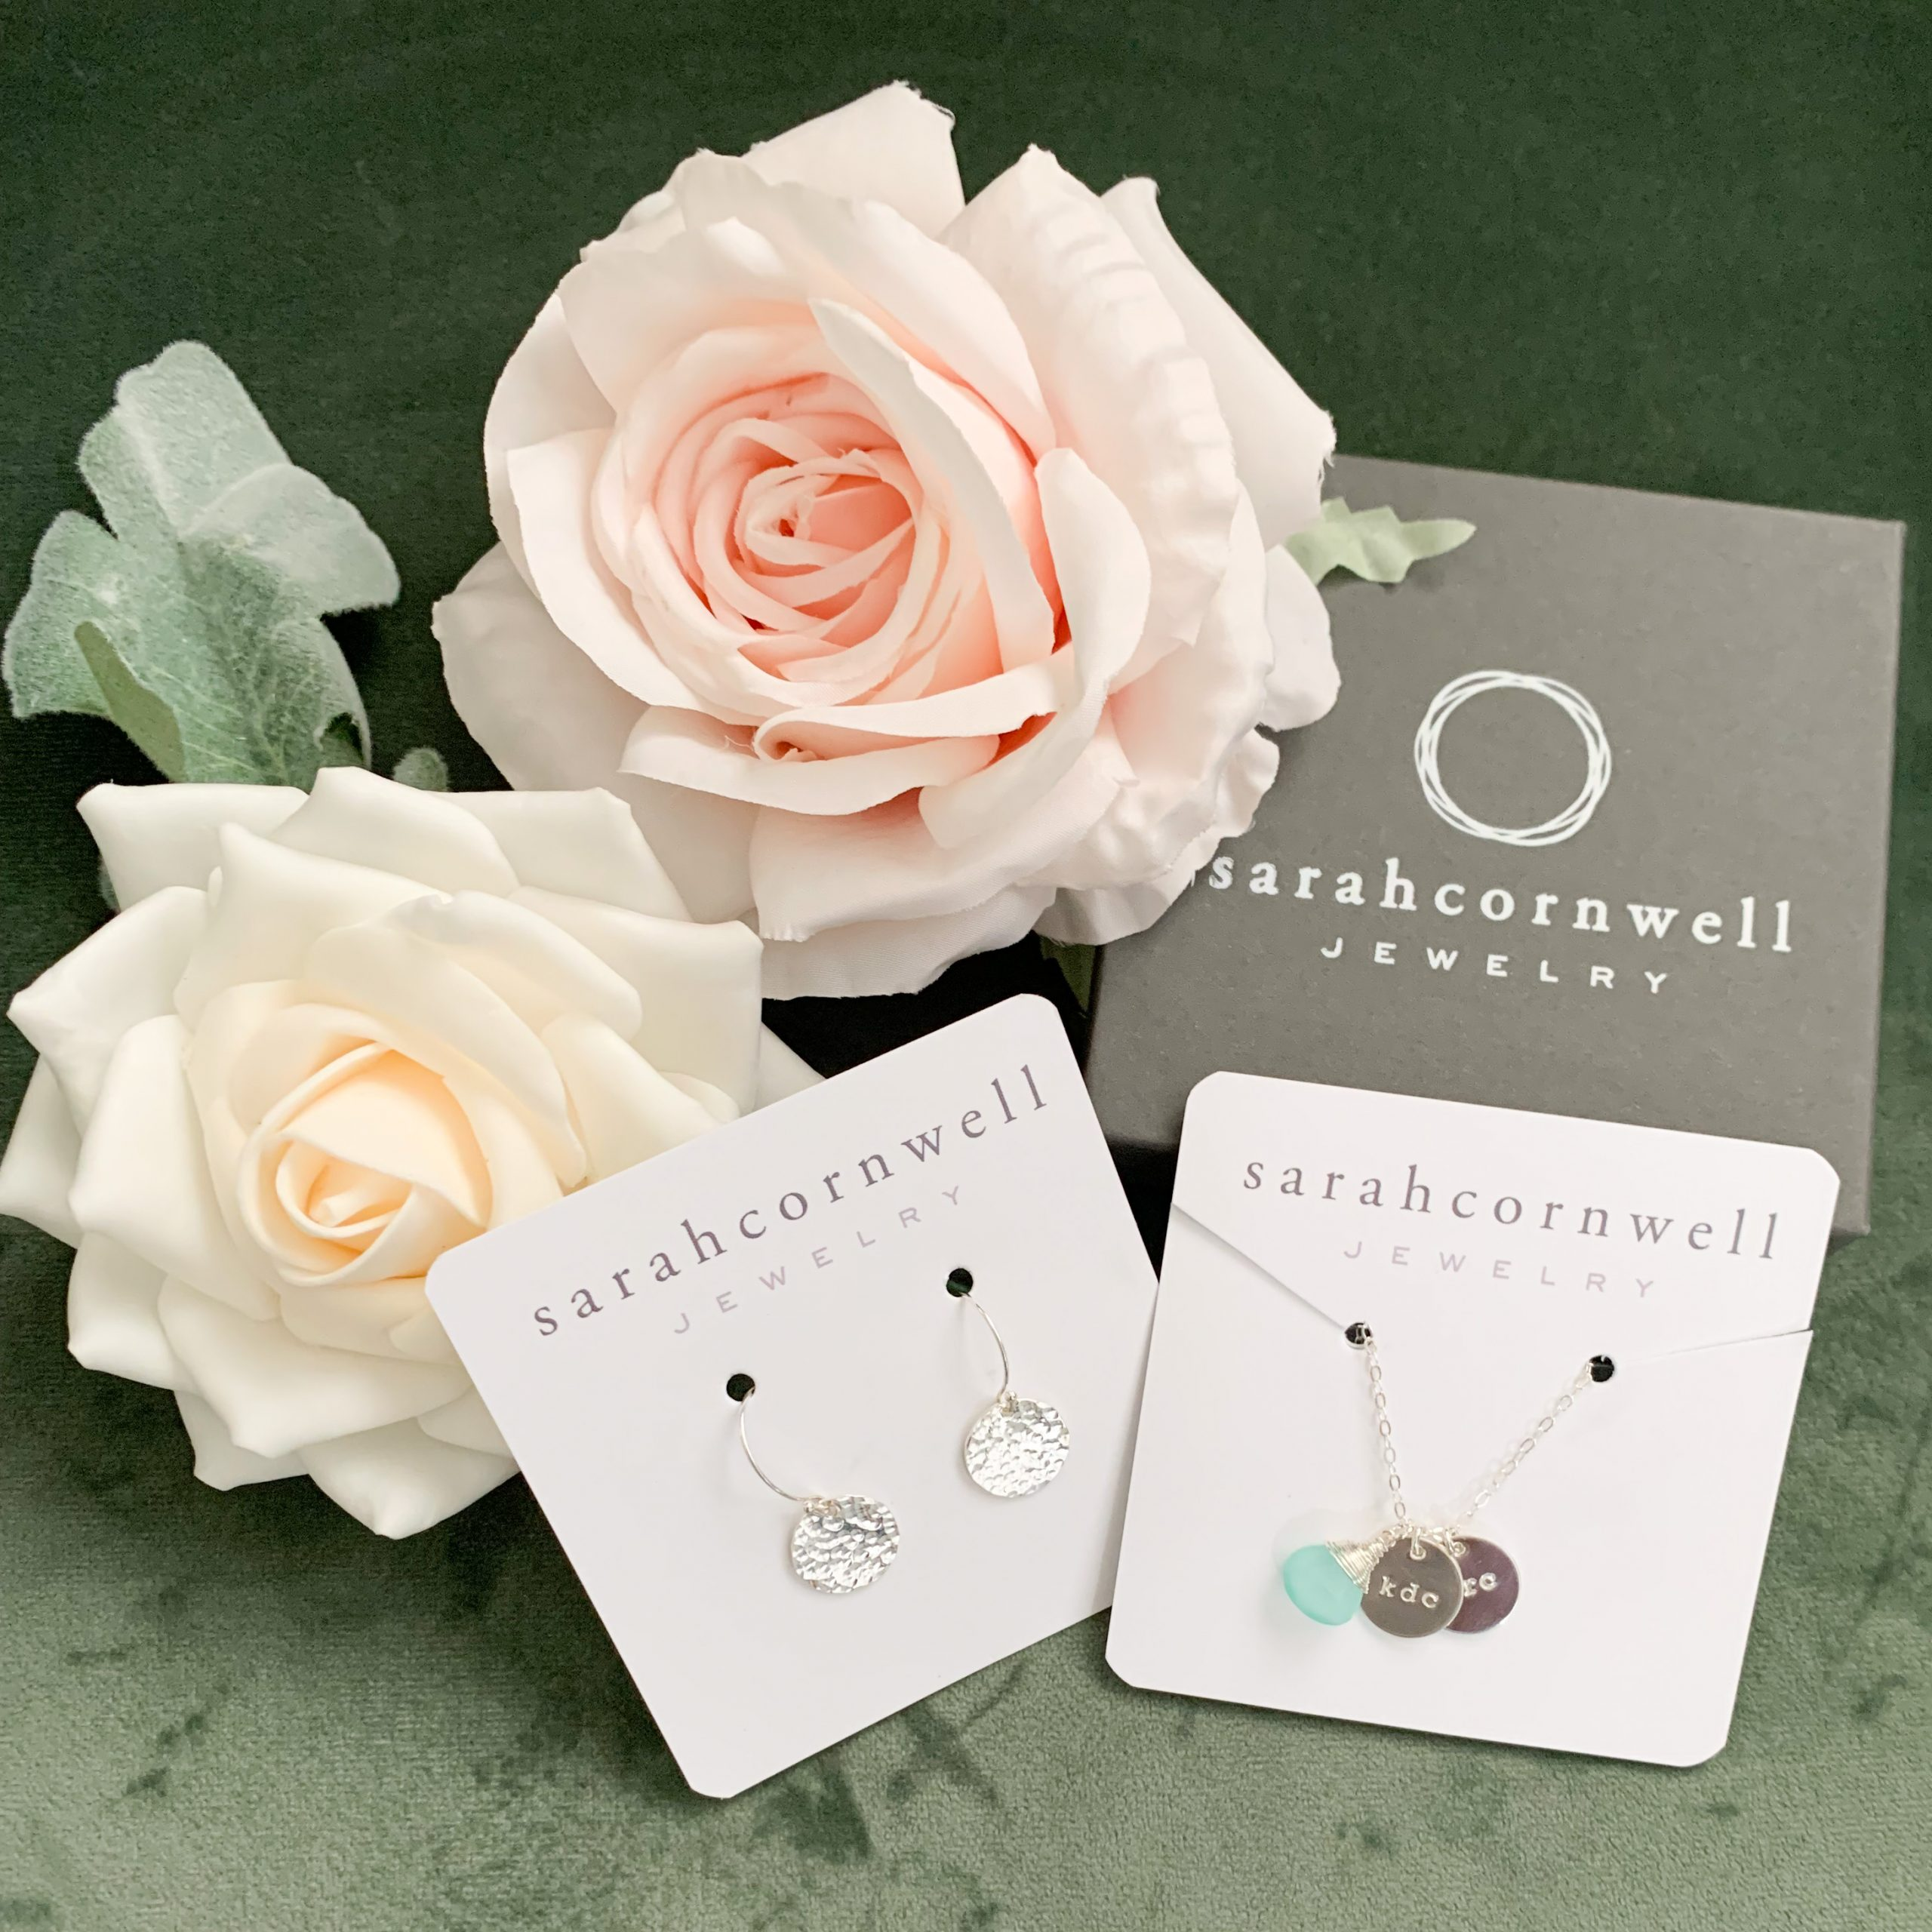 Personalized Jewelry from Sarah Cornwell